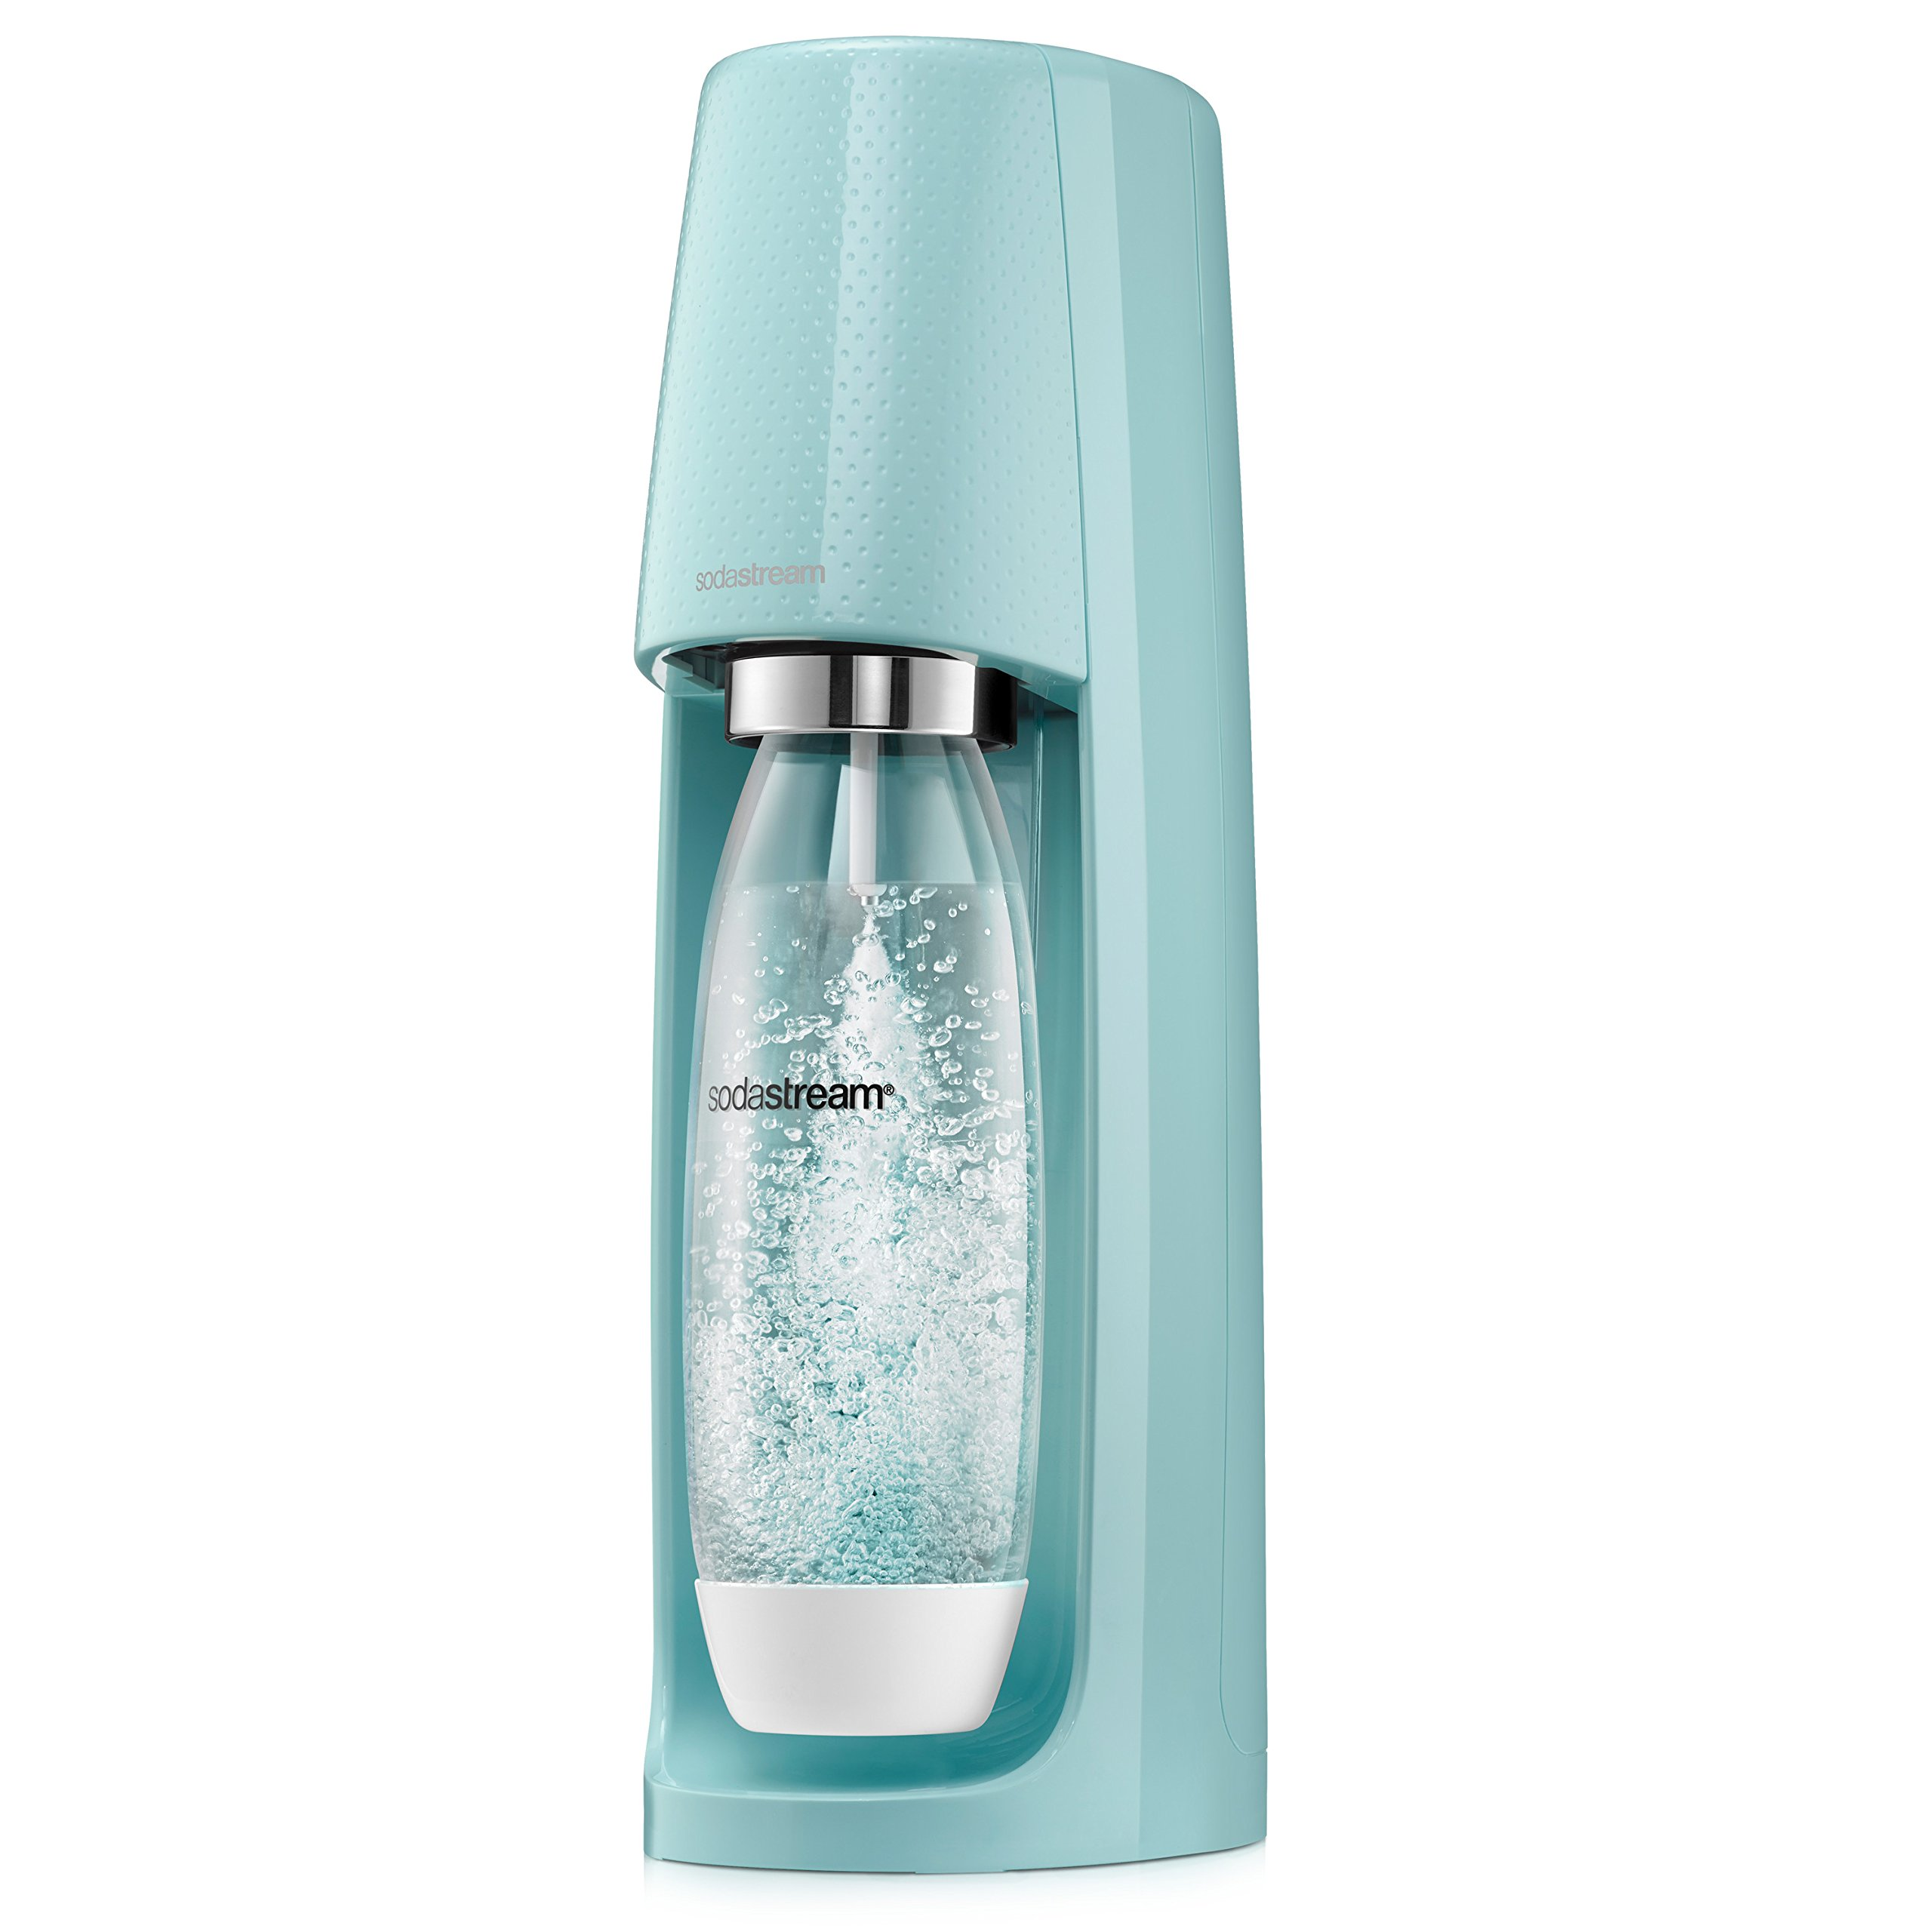 SodaStream Fizzi Sparkling Water Maker (Icy Blue)